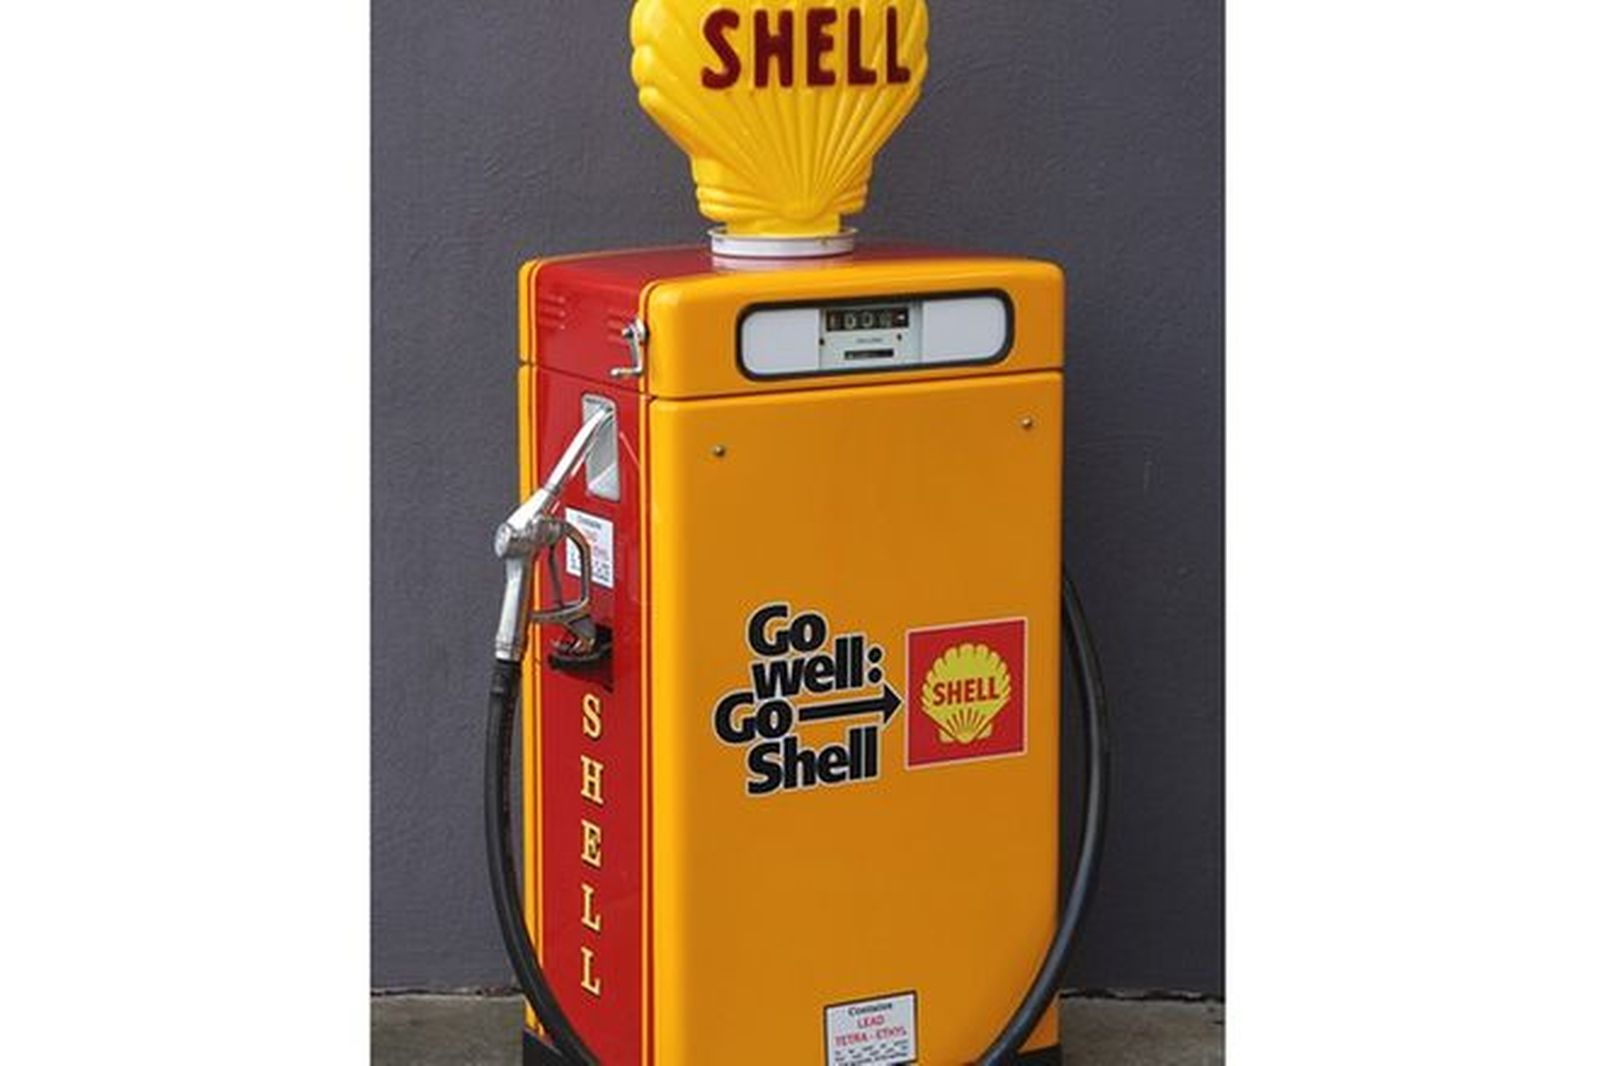 Petrol Pump -  Wayne 605 Industrial in Shell Livery with Reproduction Globe